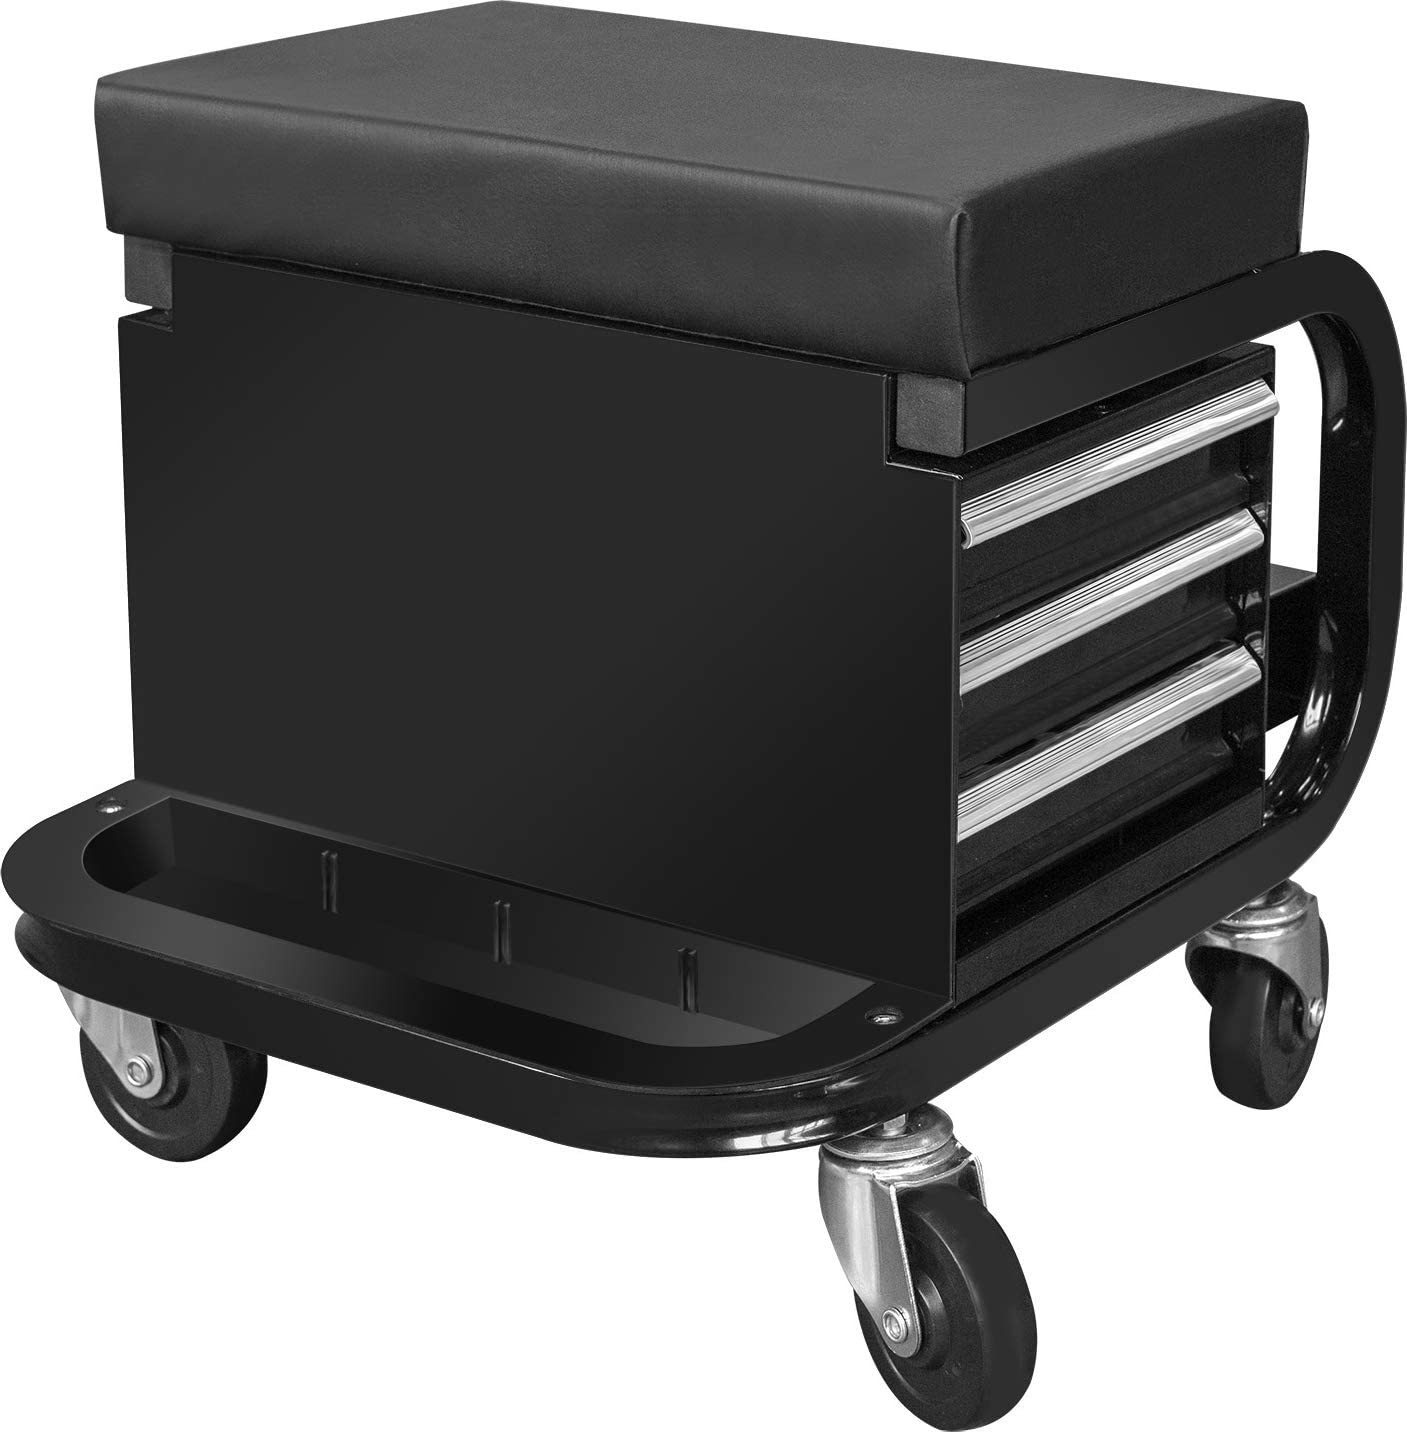 TCE APD2016AU Torin Rolling Creeper Garage//Shop Seat Padded Mechanic Stool with 3 Drawer Tool Chest Storage Black